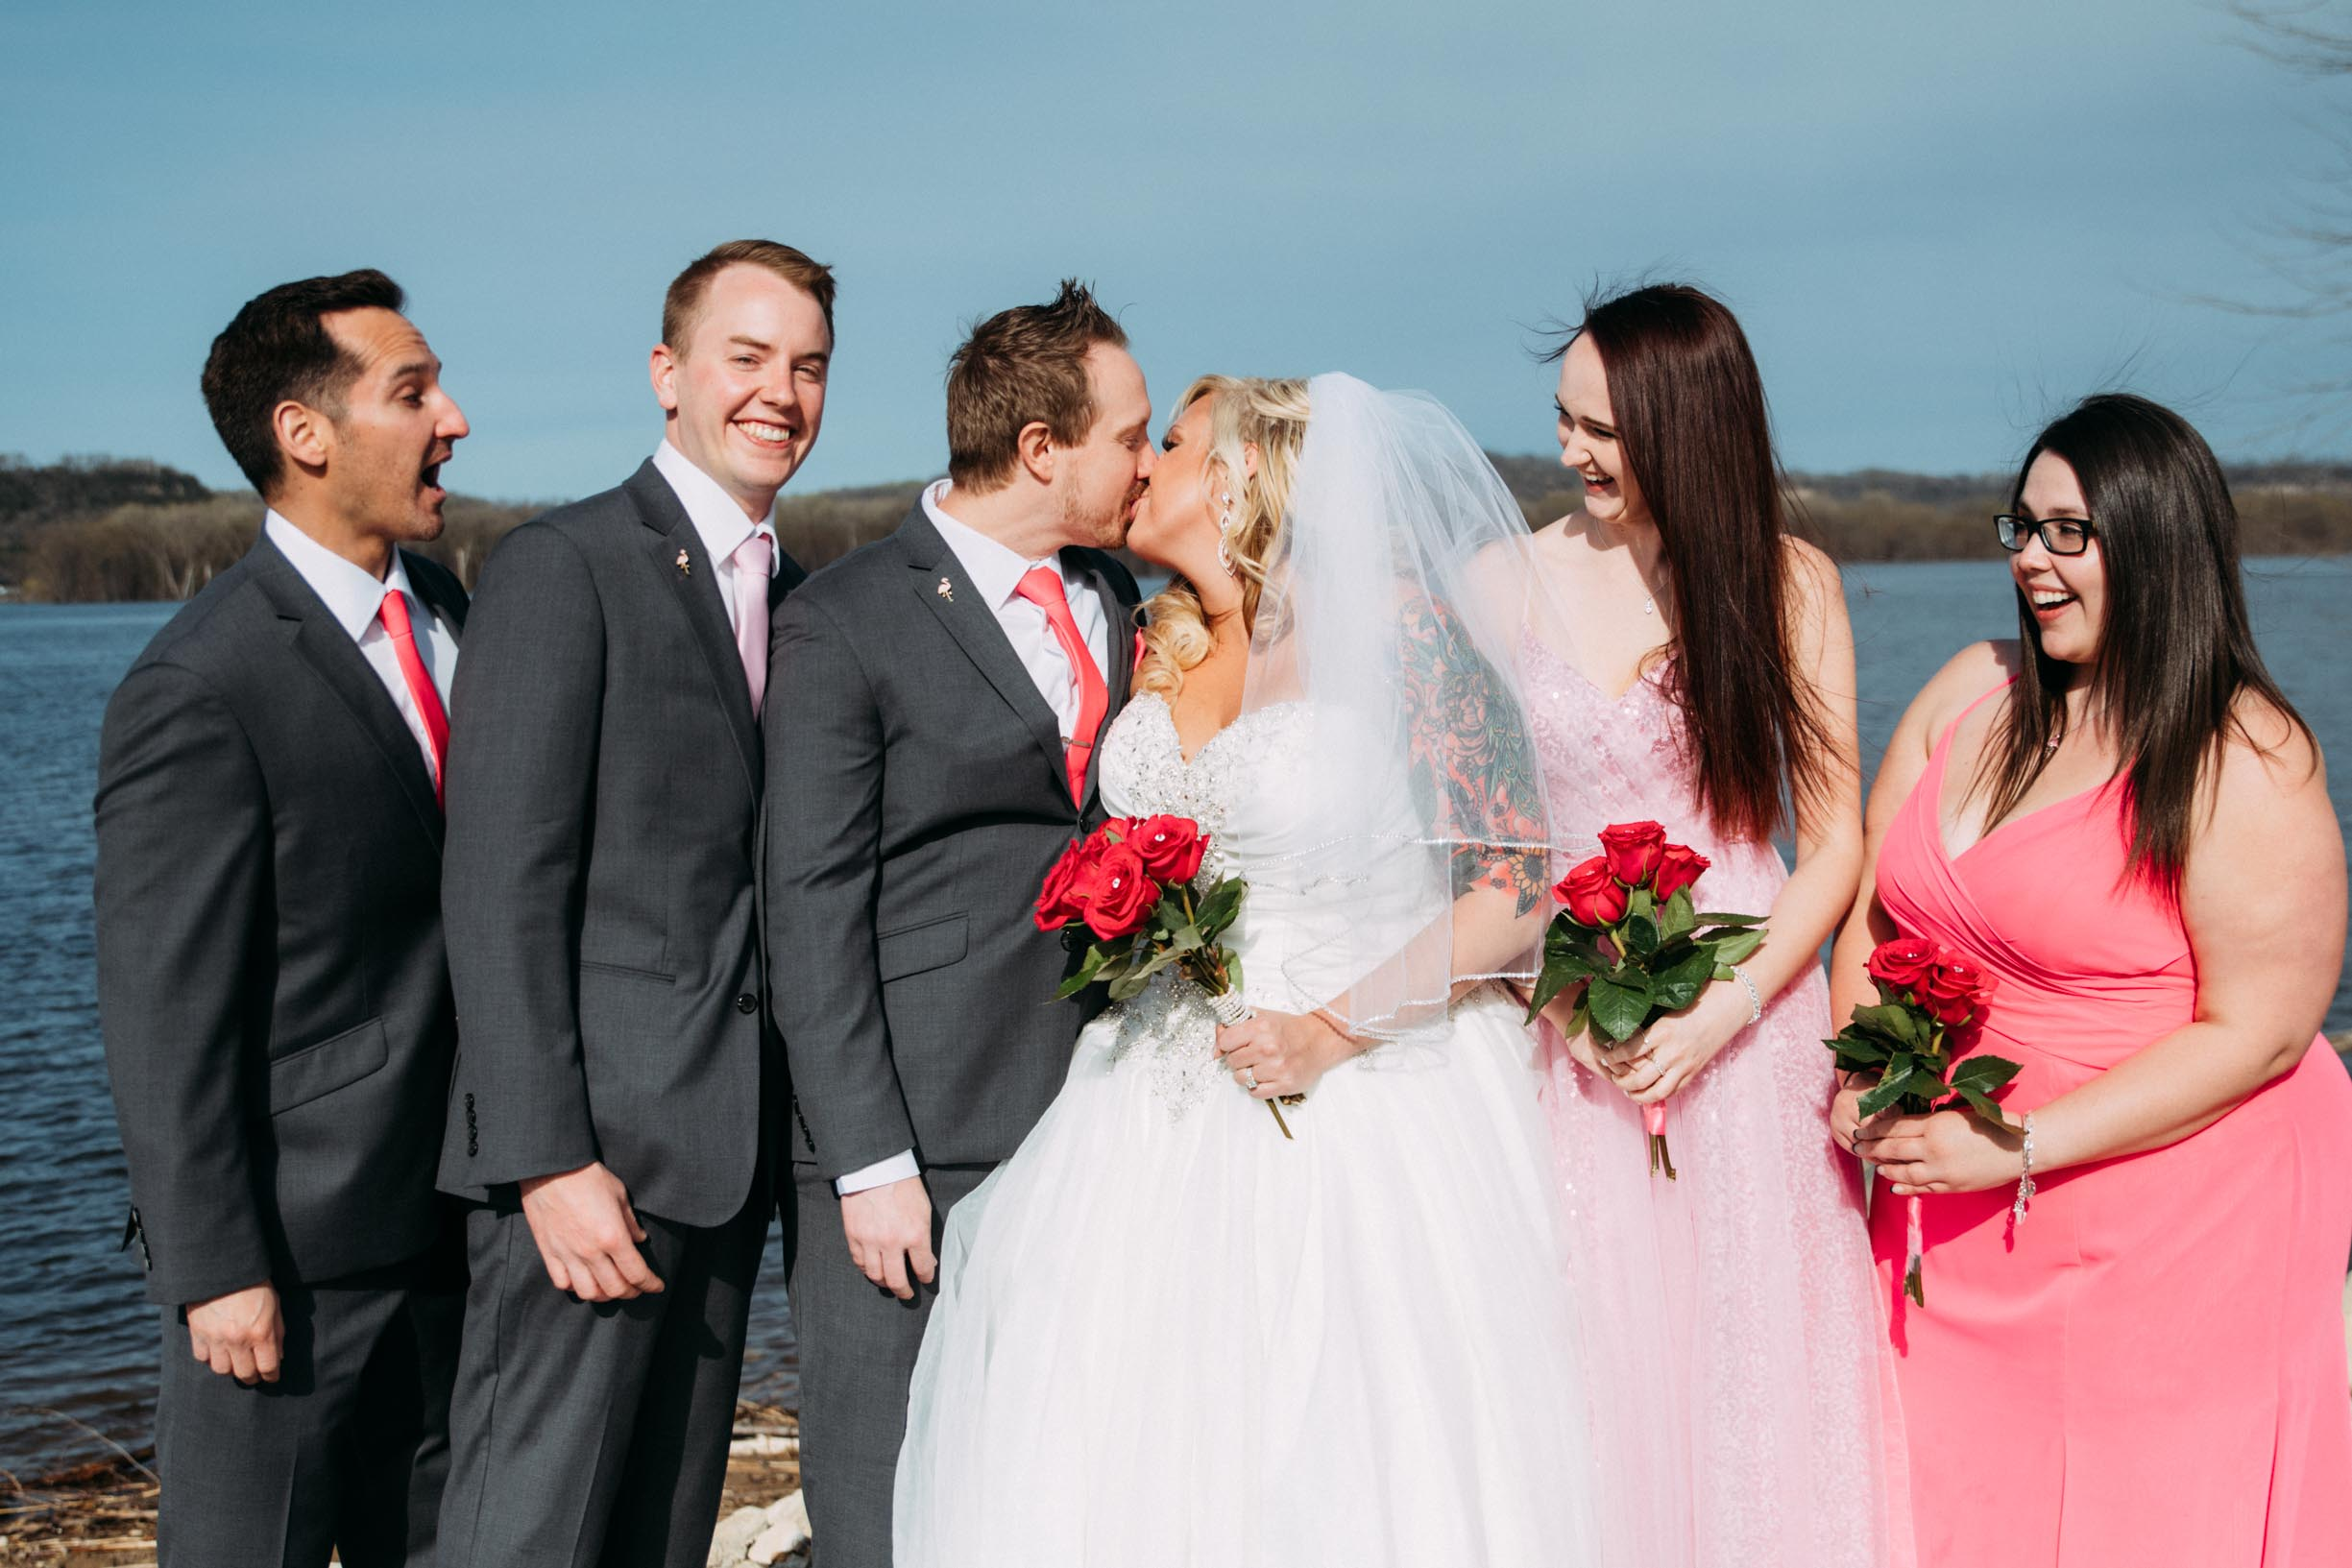 17-Minneapolis_Wedding_Photographer_Trevor_and_Elisebeth.jpg